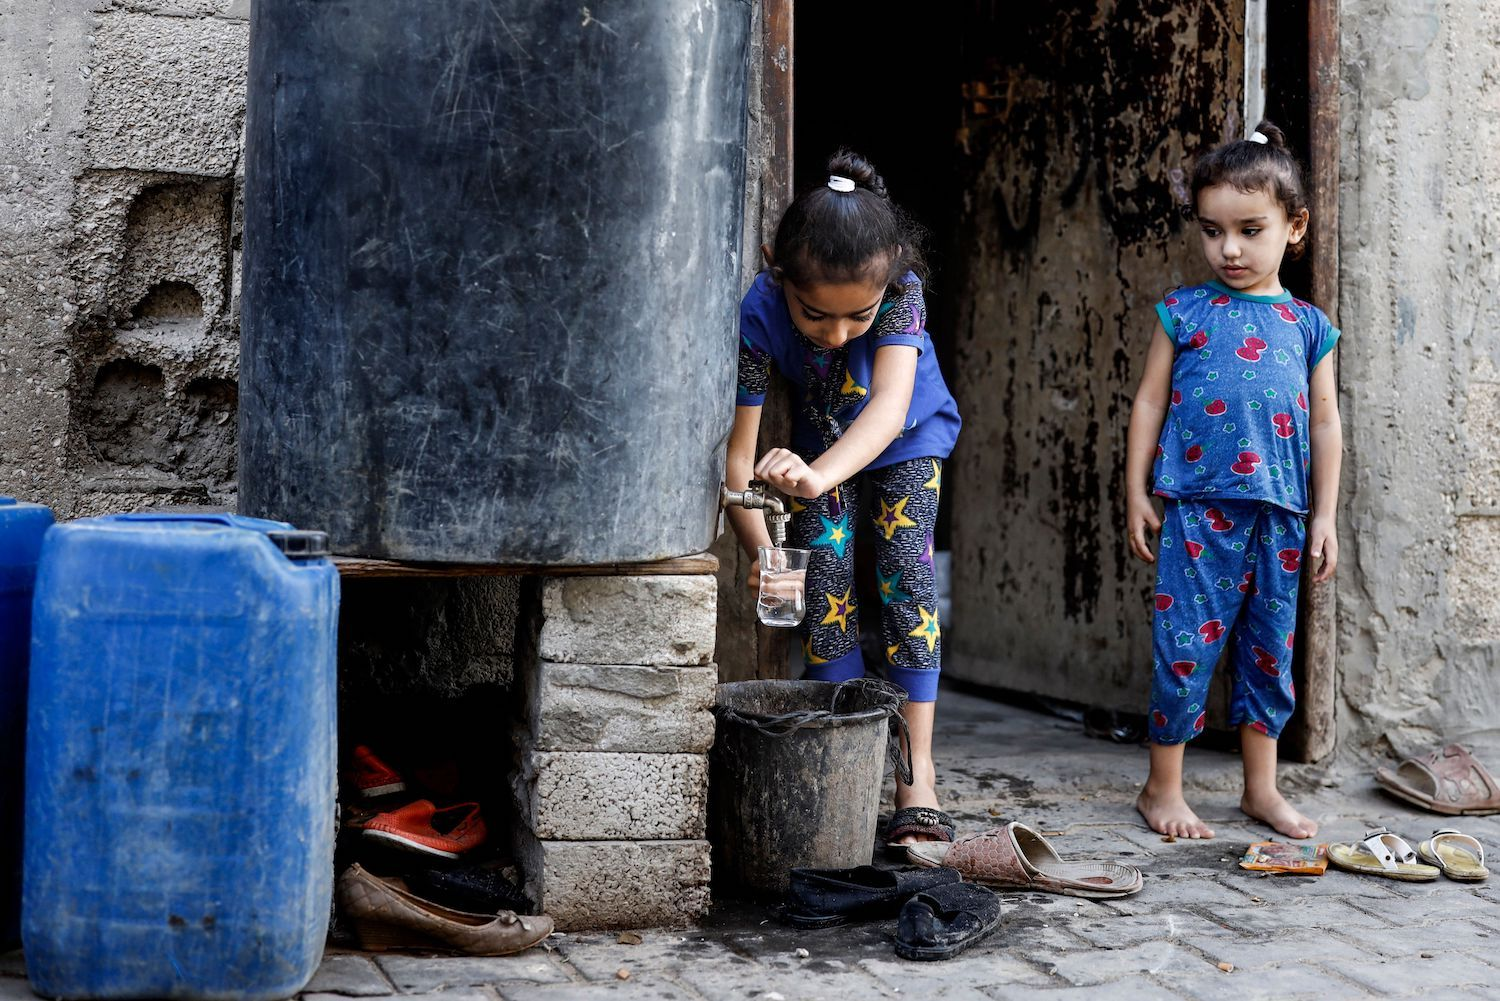 A Palestinian girl fills up a bottle with water from a cistern in the southern Gaza Strip on Oct. 24. Photo by Thomas Coex/AFP/Getty Images (via Foreign Policy)